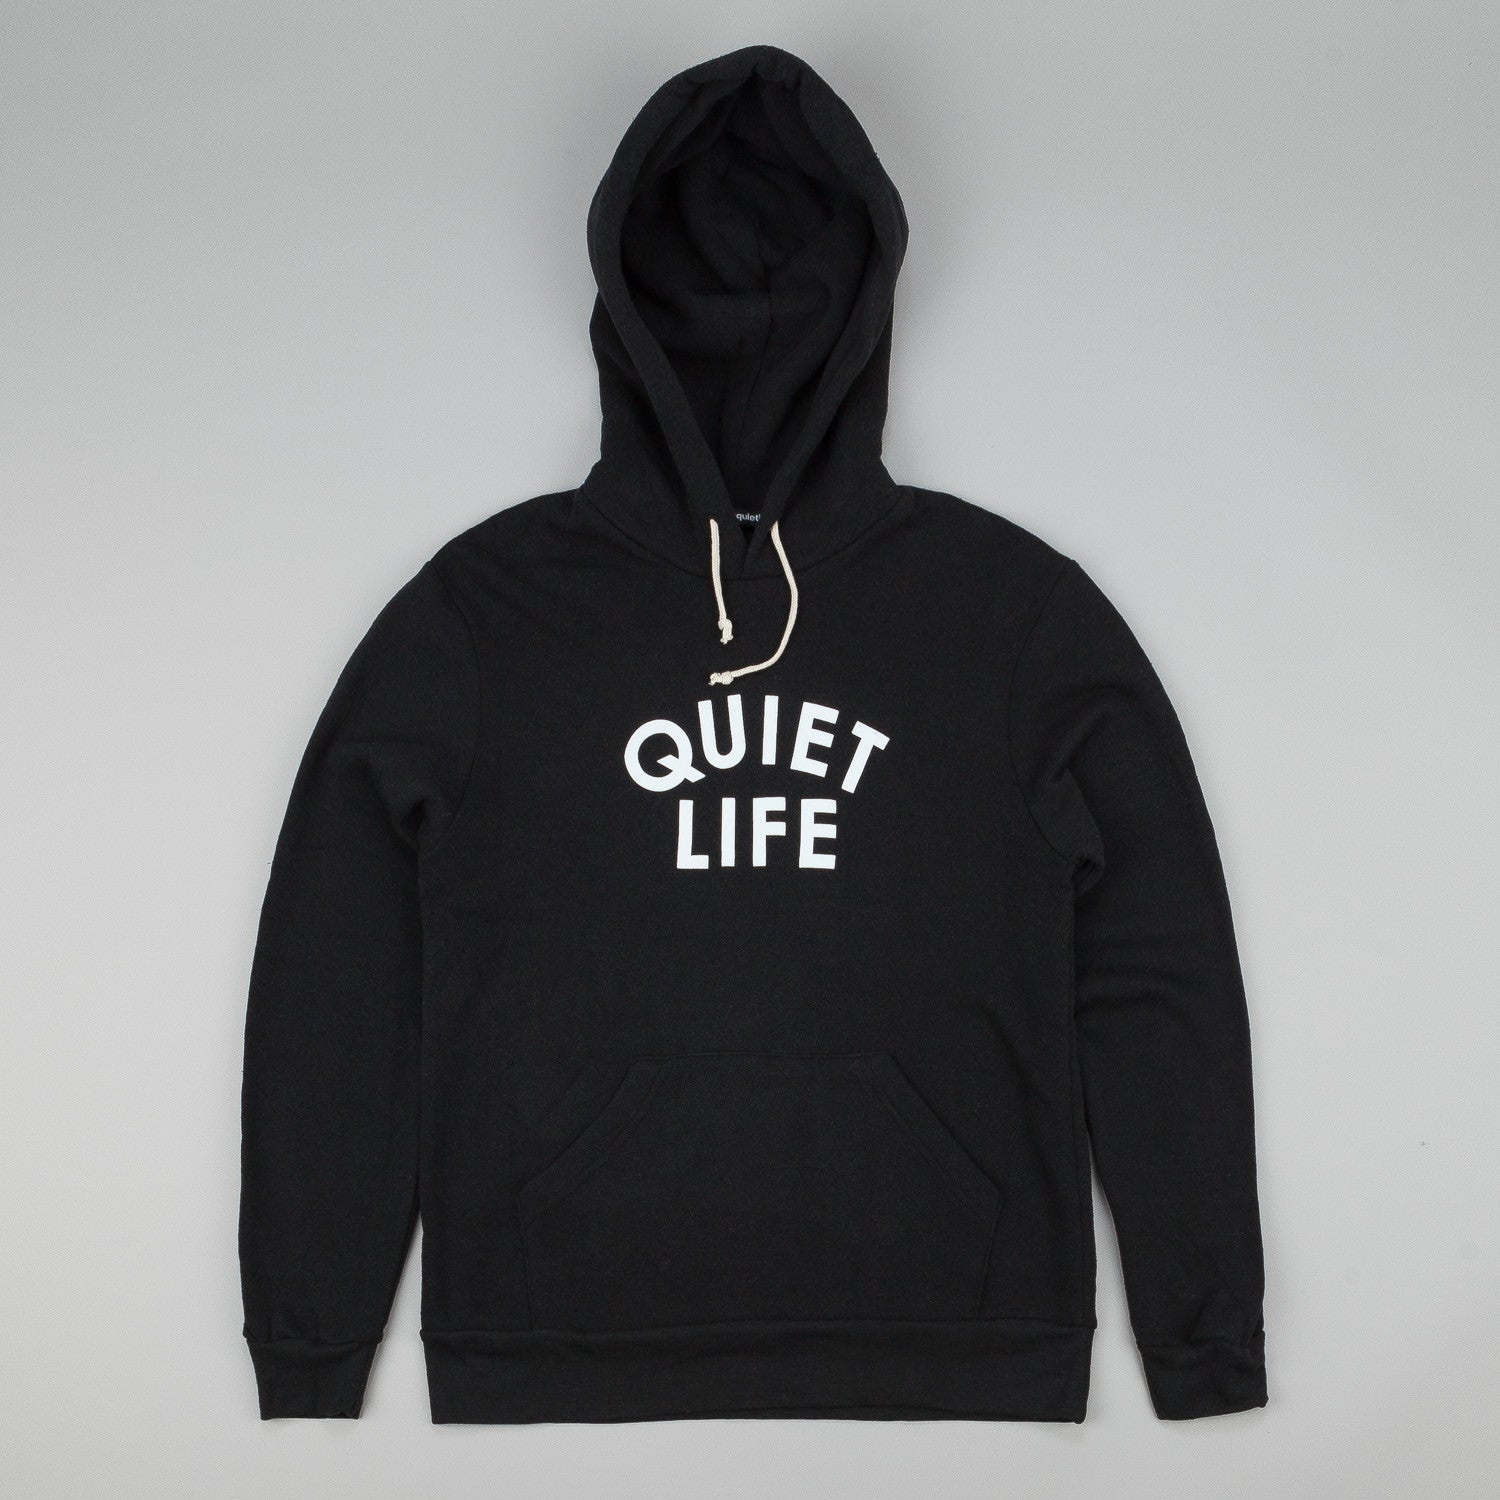 The Quiet Life Since '97 Hooded Sweatshirt - Black